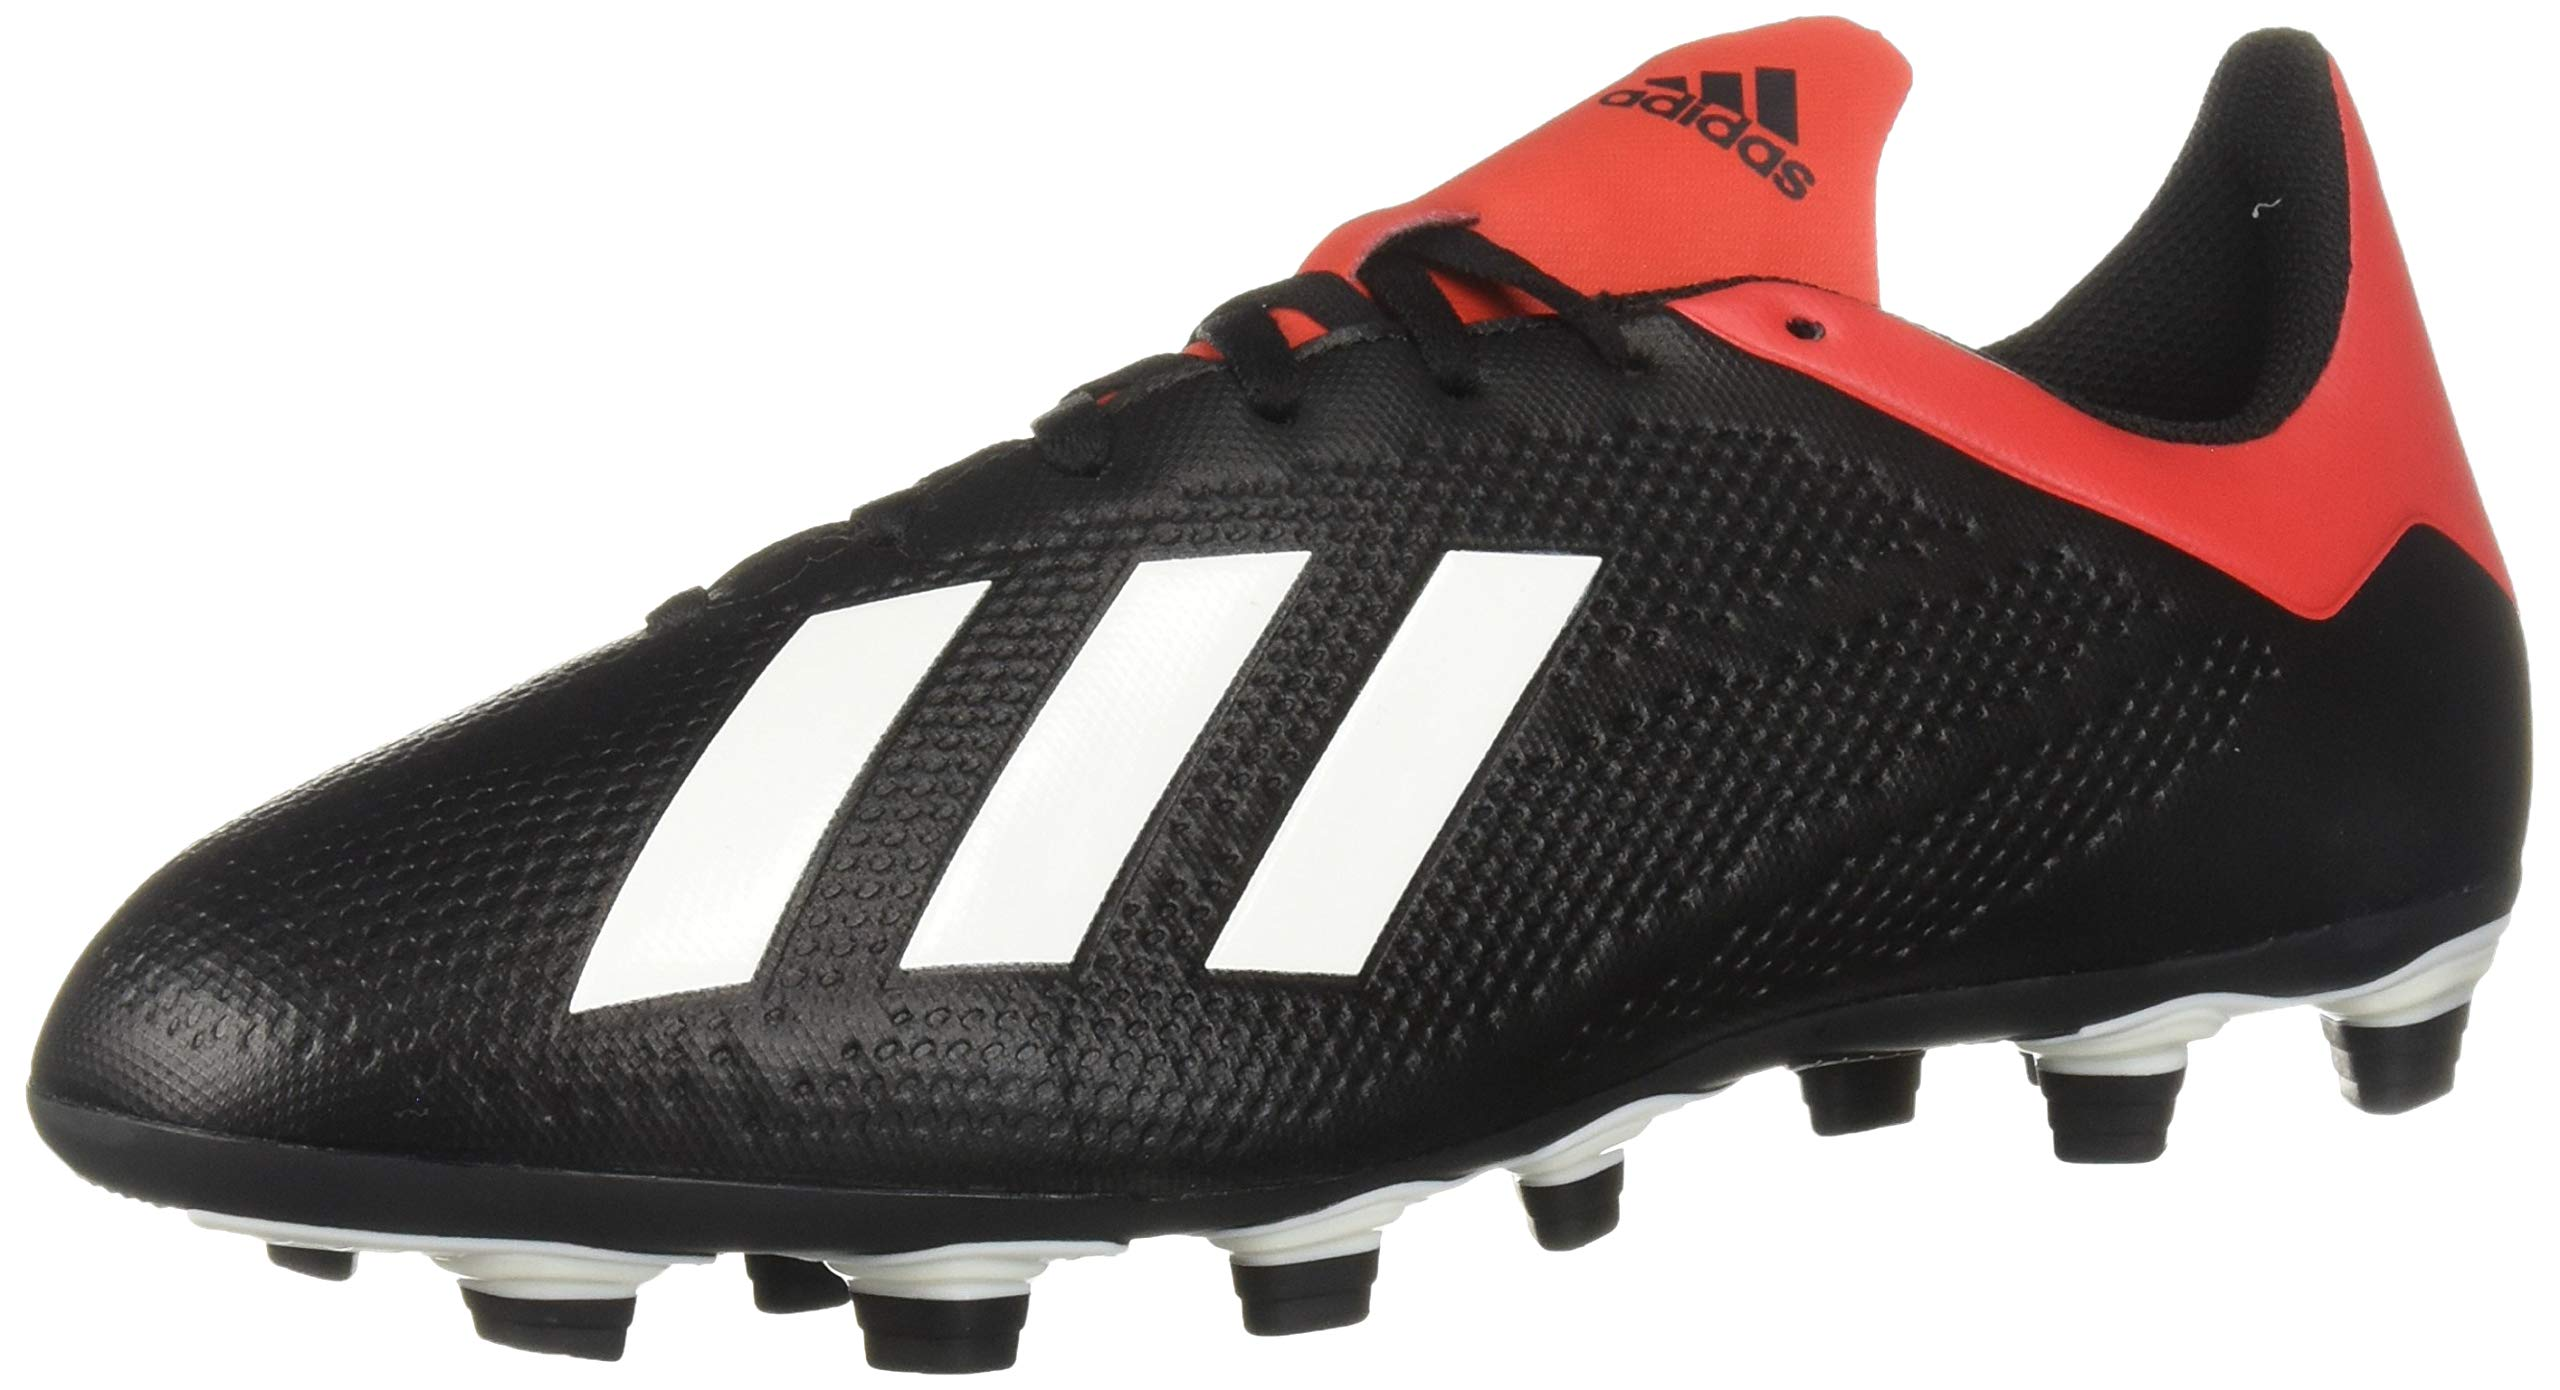 adidas Men's X 18.4 Firm Ground, Black/Off White/Active red 11.5 M US by adidas